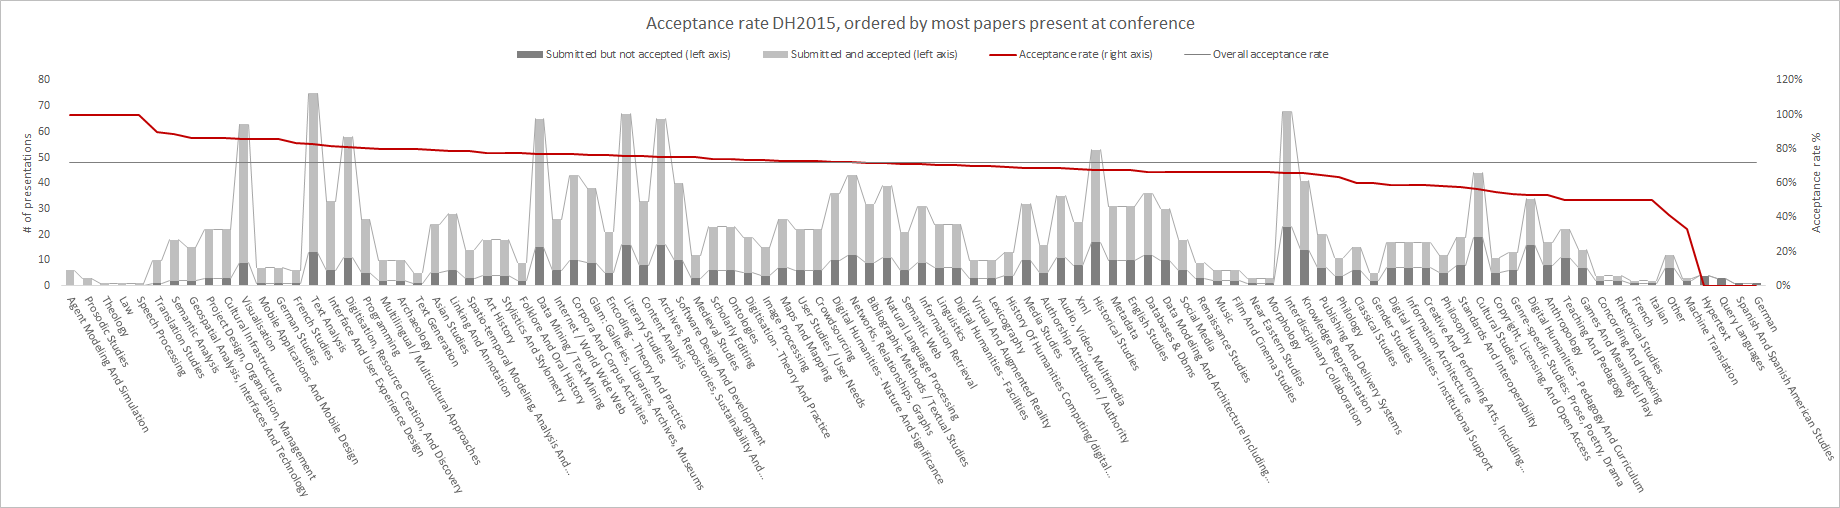 Figure 2. Acceptance rates of topics to DH2015, sorted by acceptance rate. Click to enlarge.